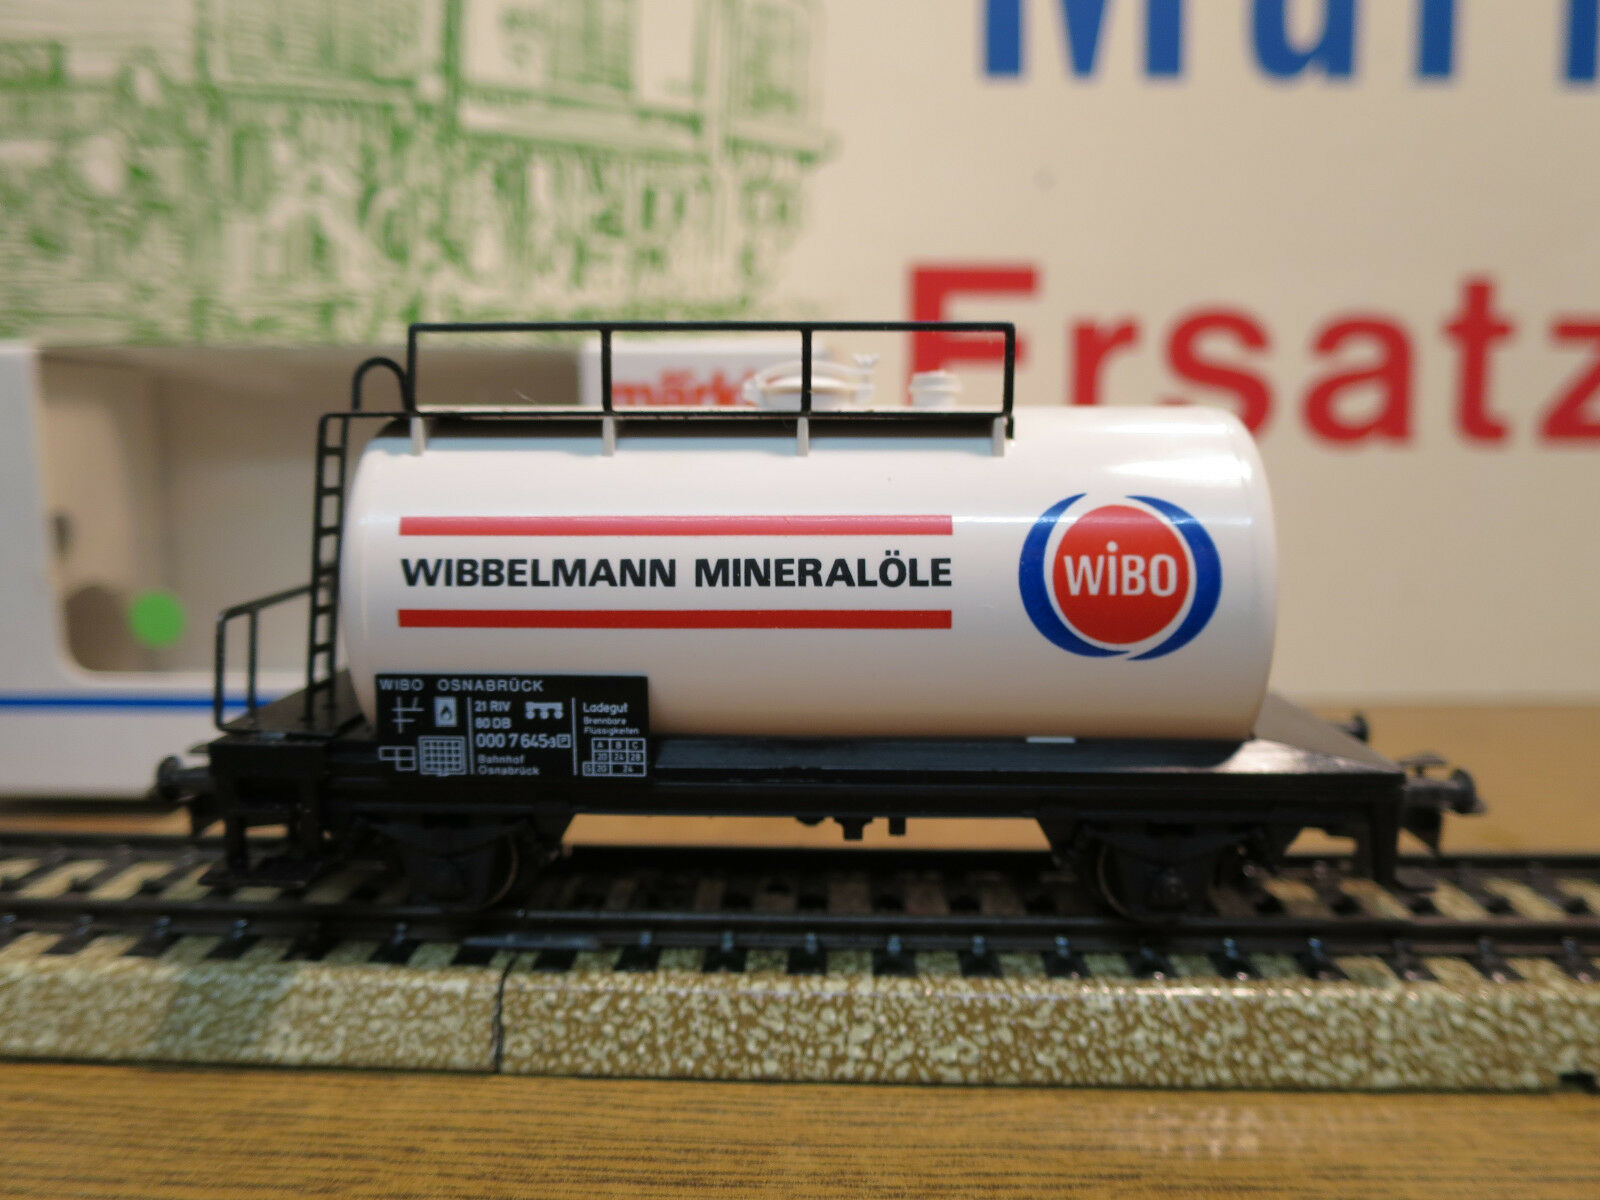 (h04) Märklin Car Special  WIBO  Wibbelmann mineral oils Top NEW RARE